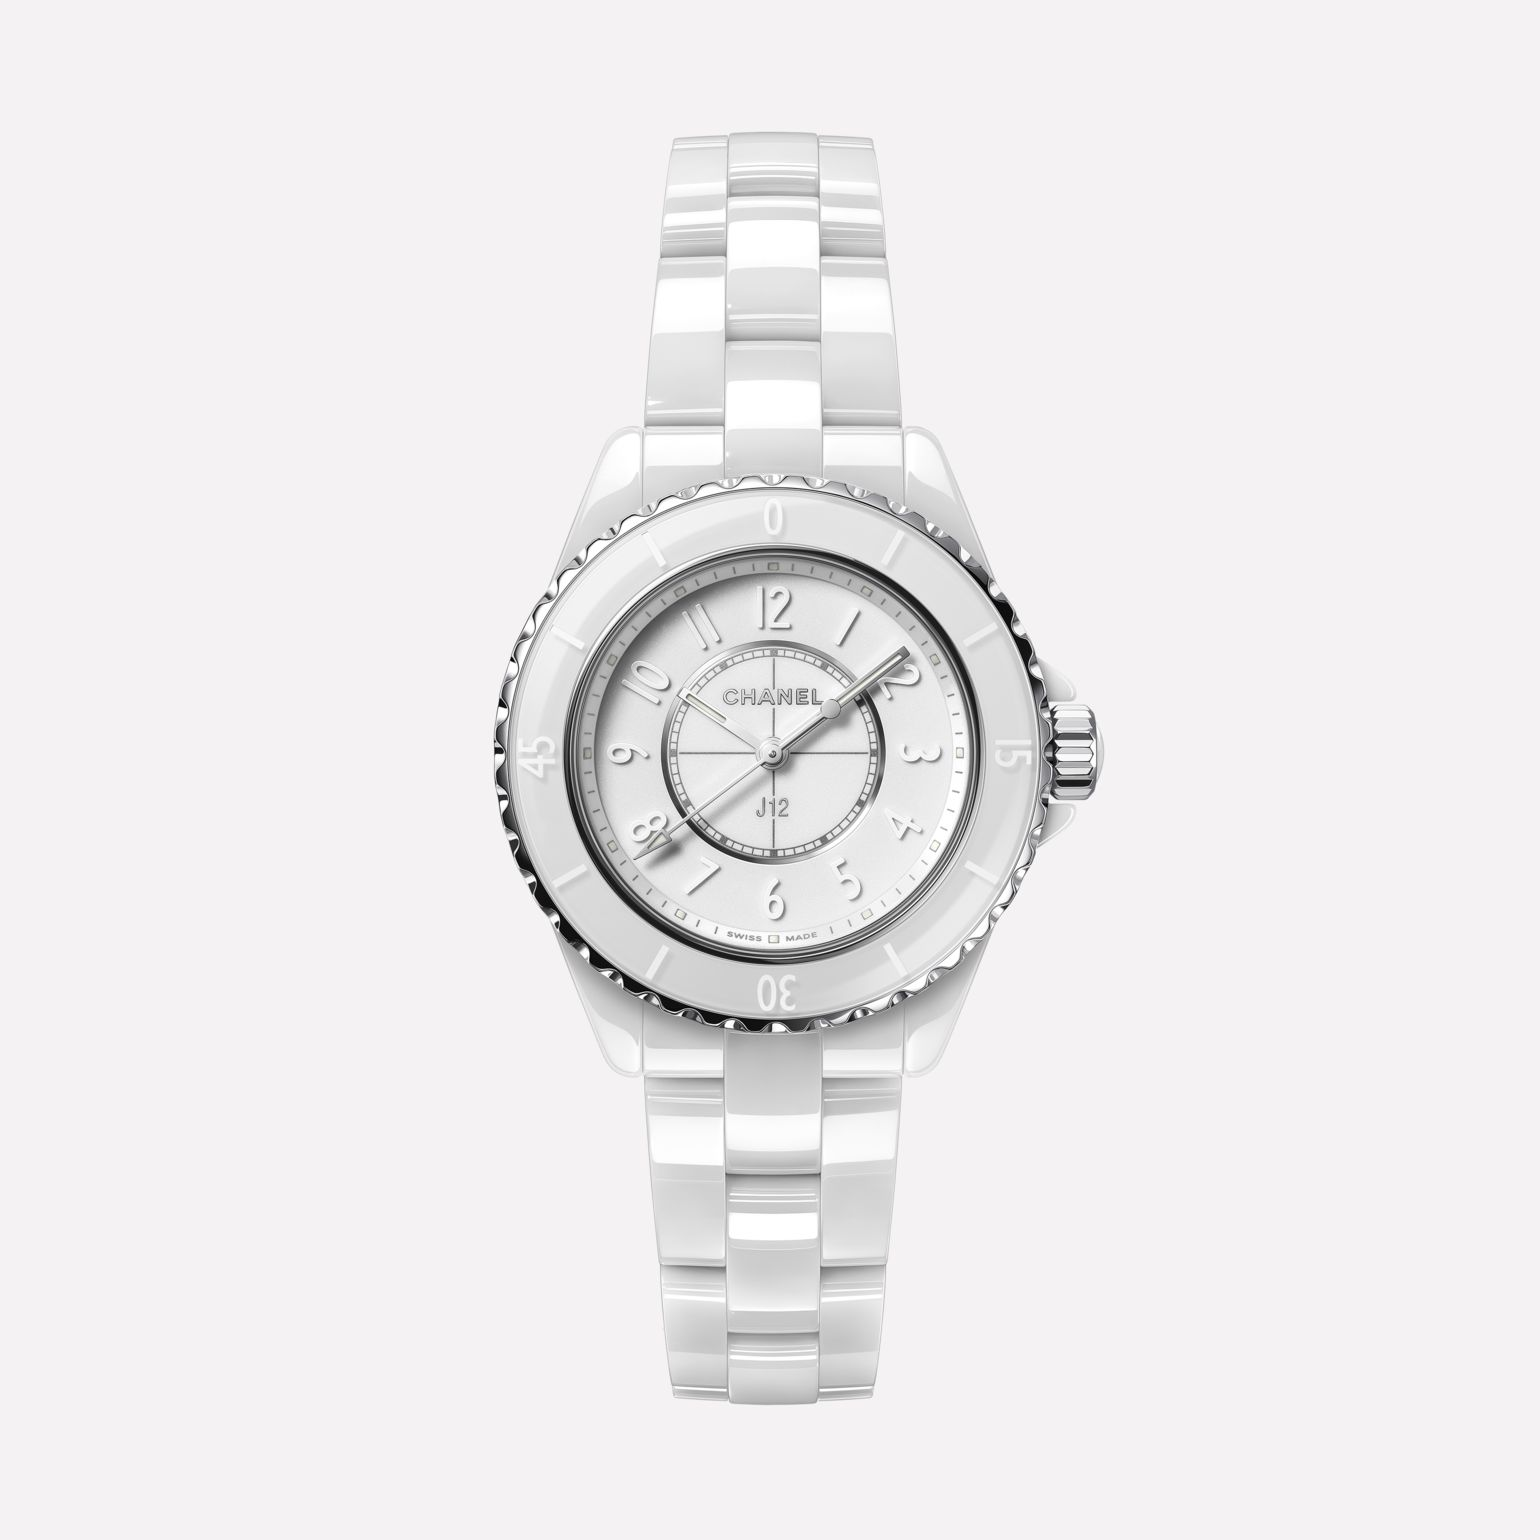 J12 Phantom Watch, 33 mm White highly resistant ceramic and steel